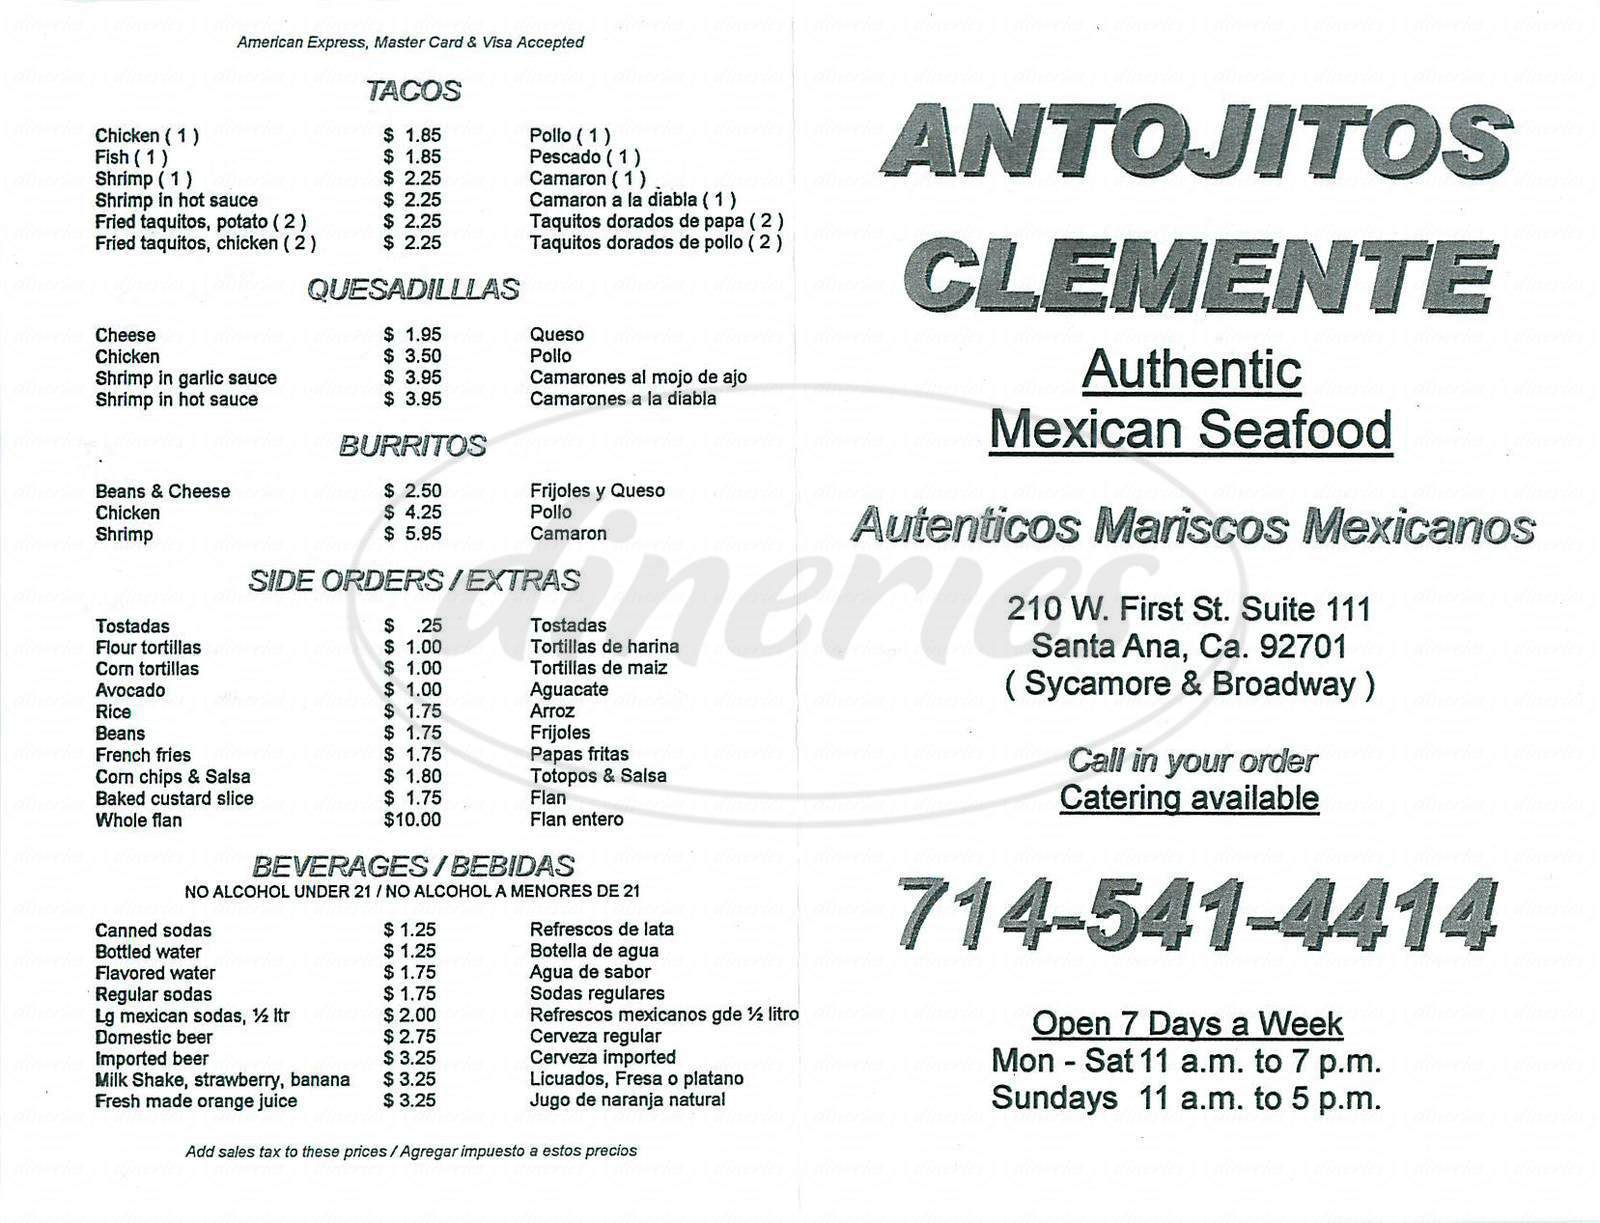 menu for Antojitos Clemente